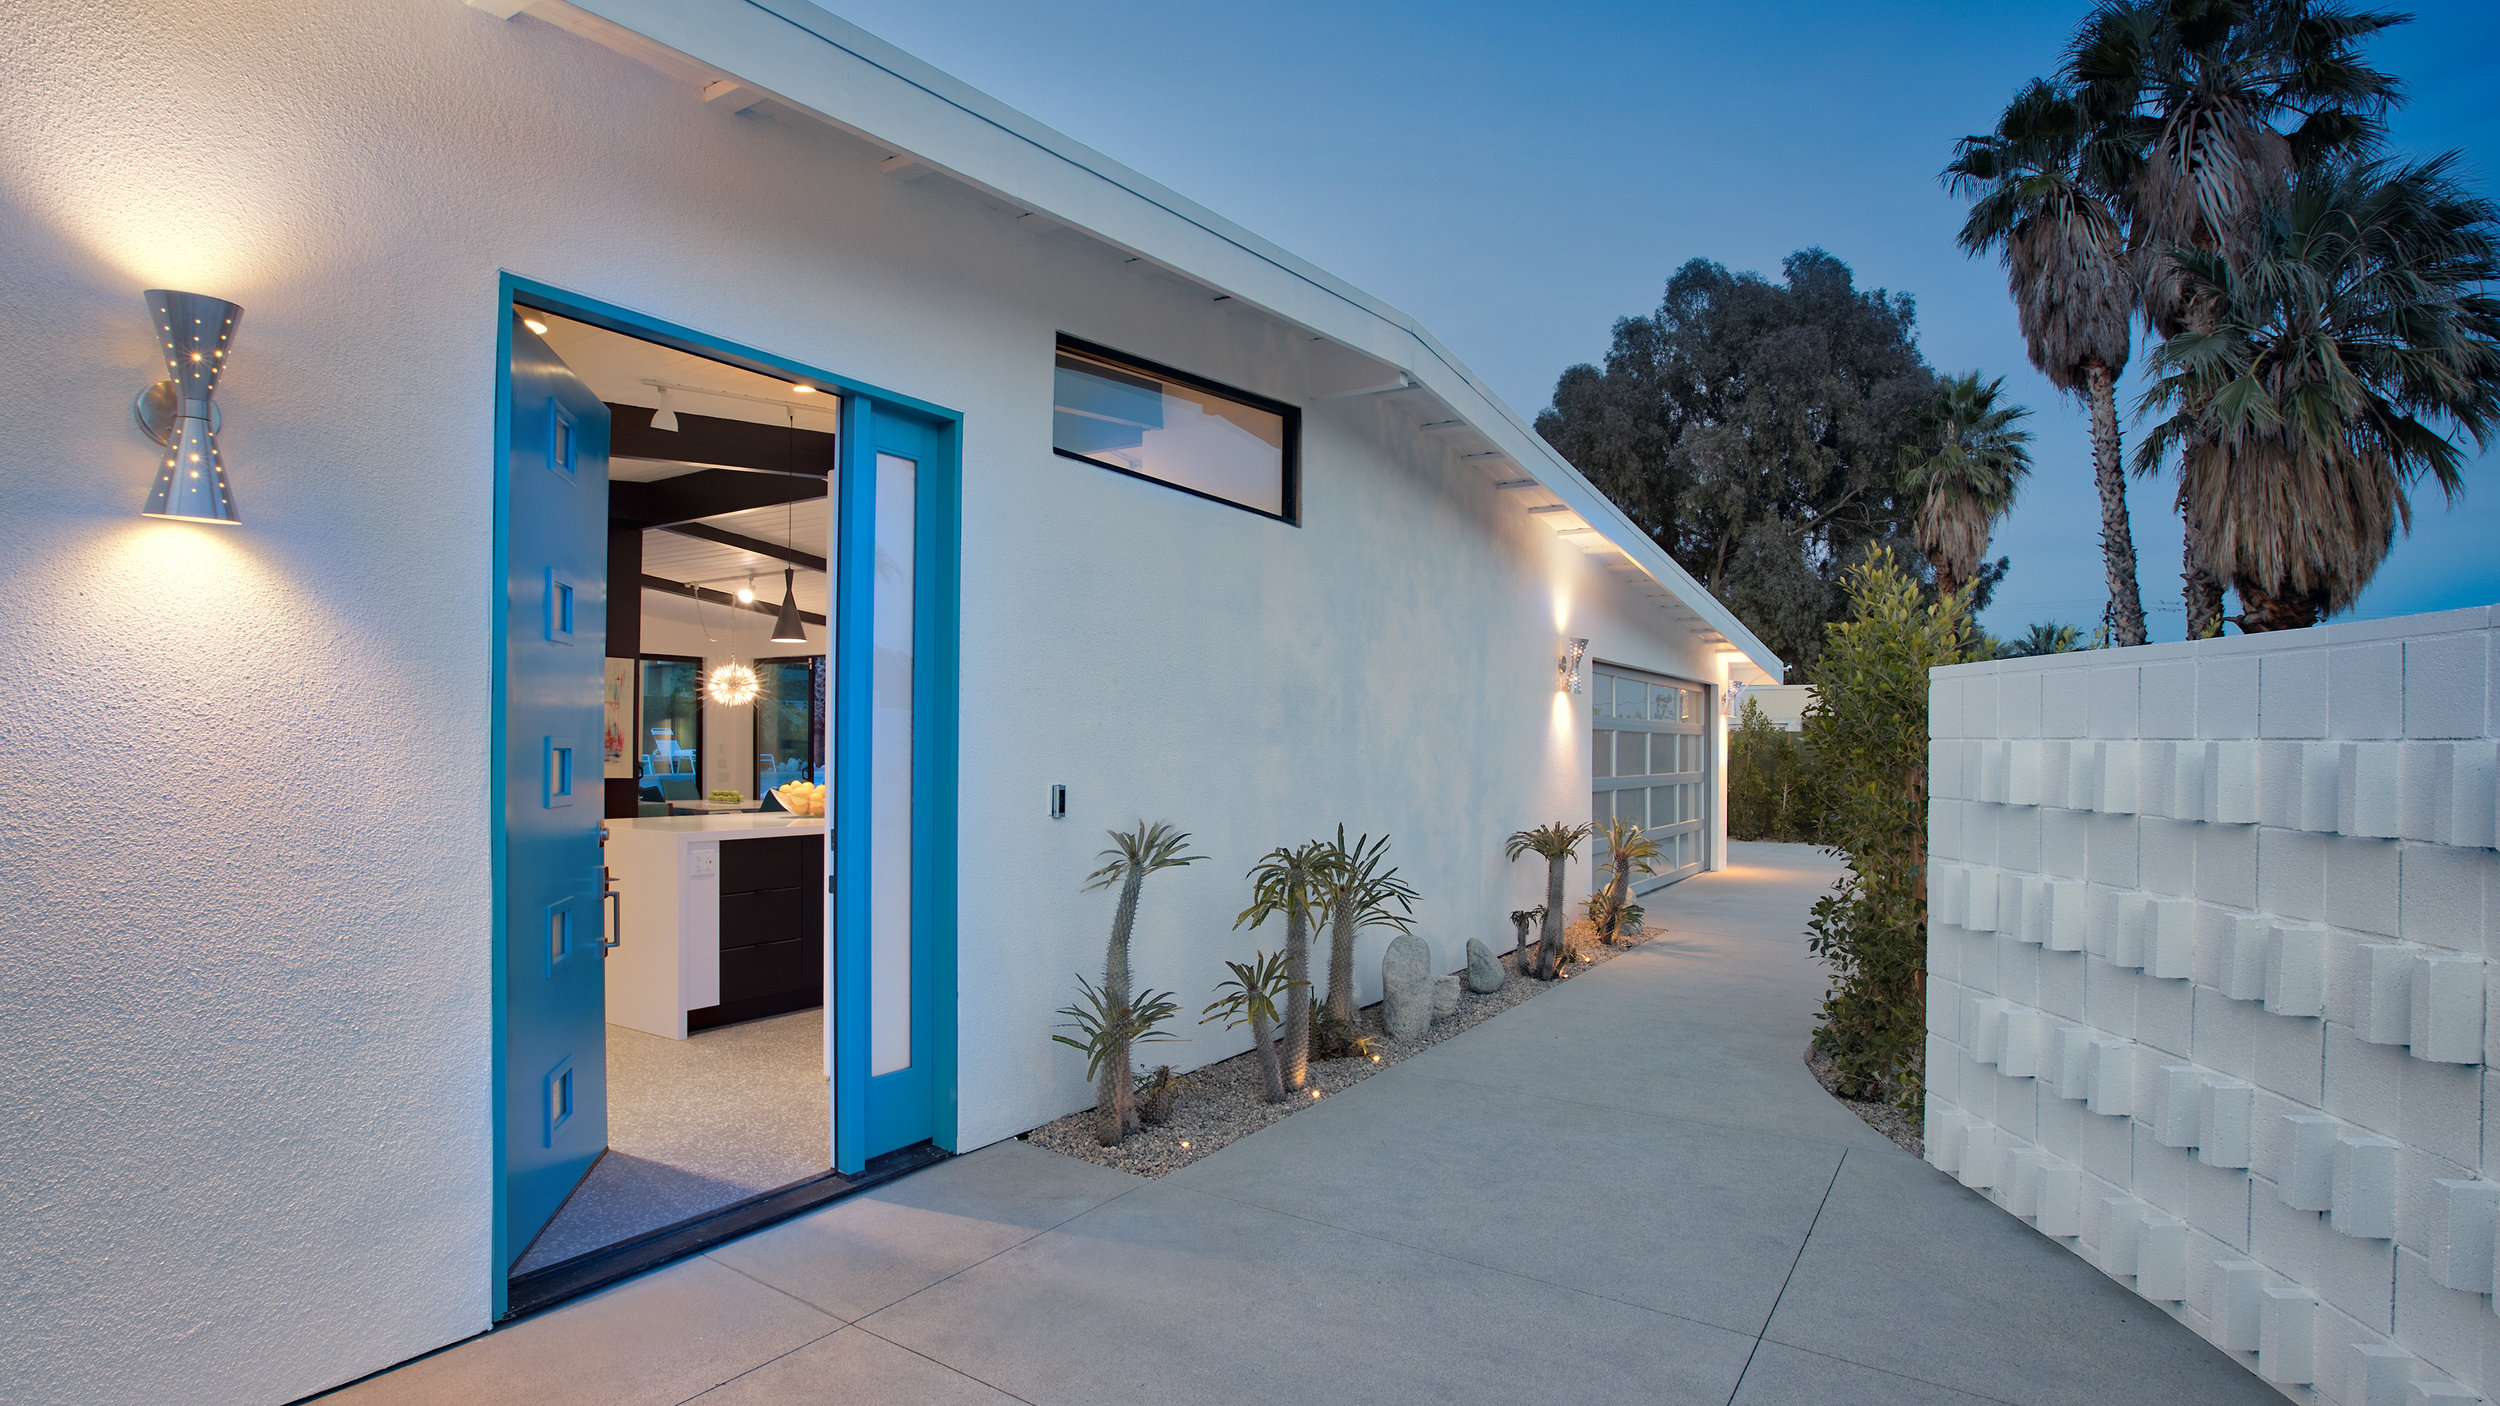 Welcome, come on in! Beautiful mid-century turquoise front door with private screenblock wall entry.